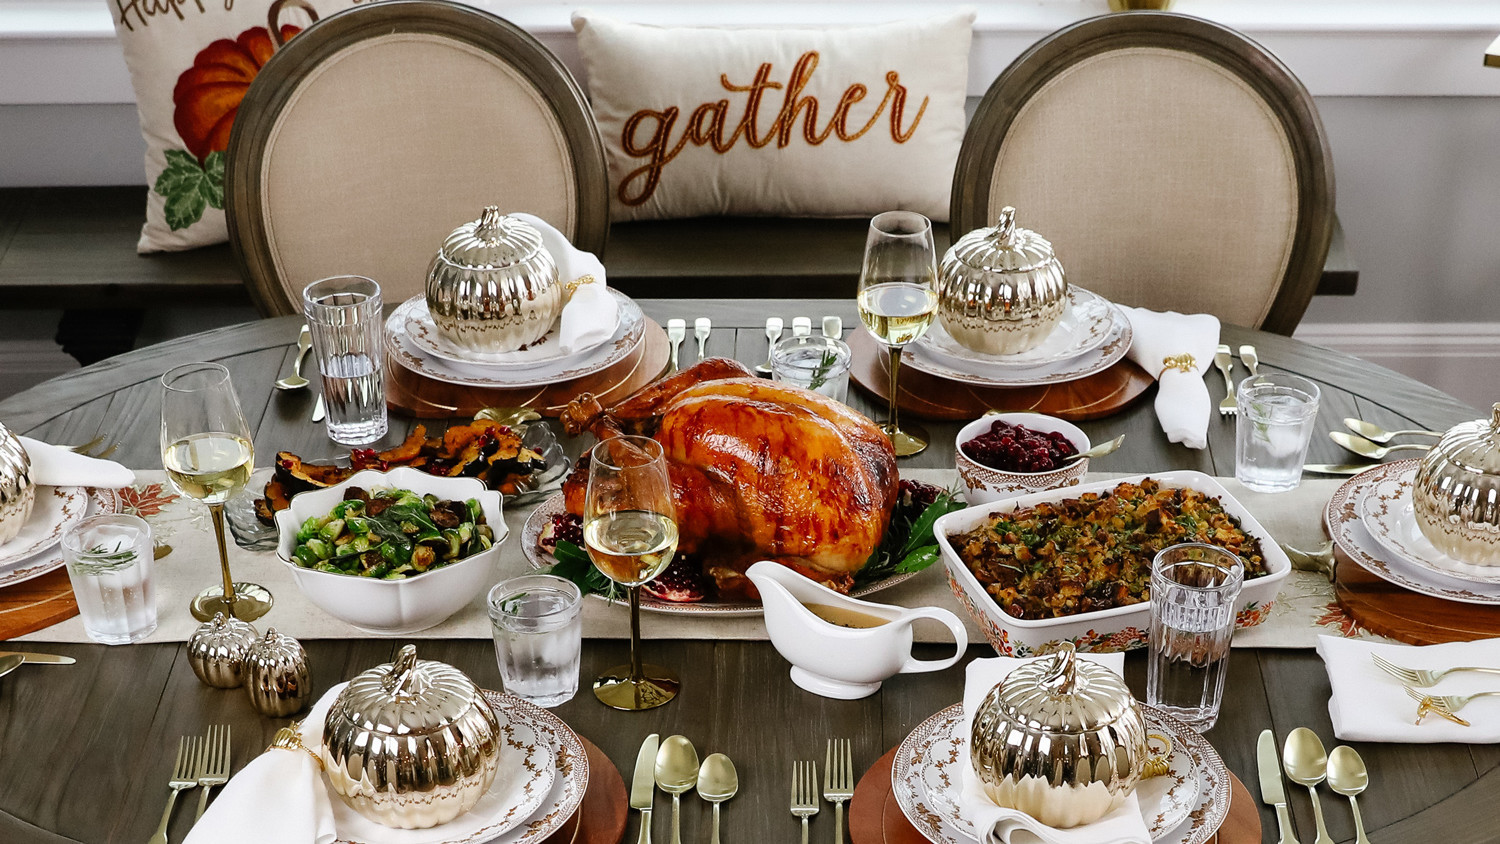 Thanksgiving table spread and gather pillow